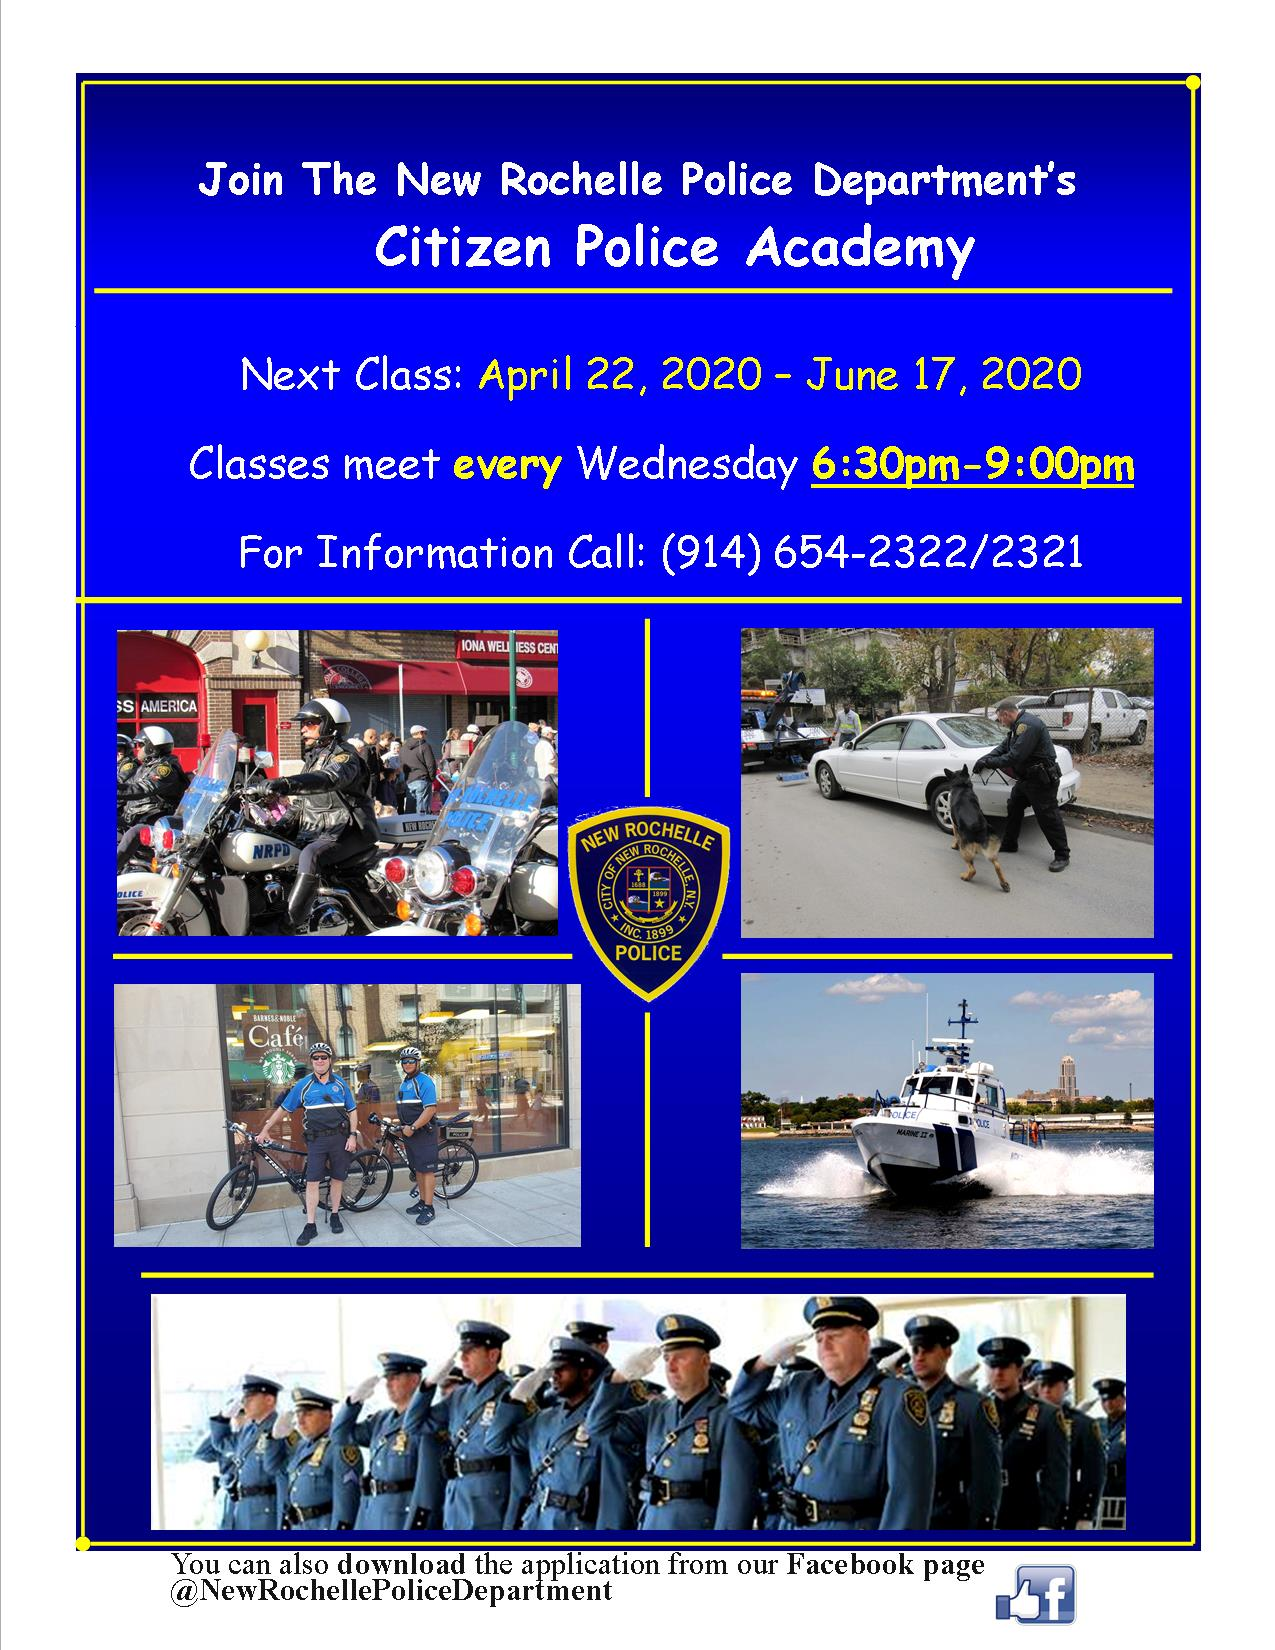 Citizen Police Academy 2020 Flyer